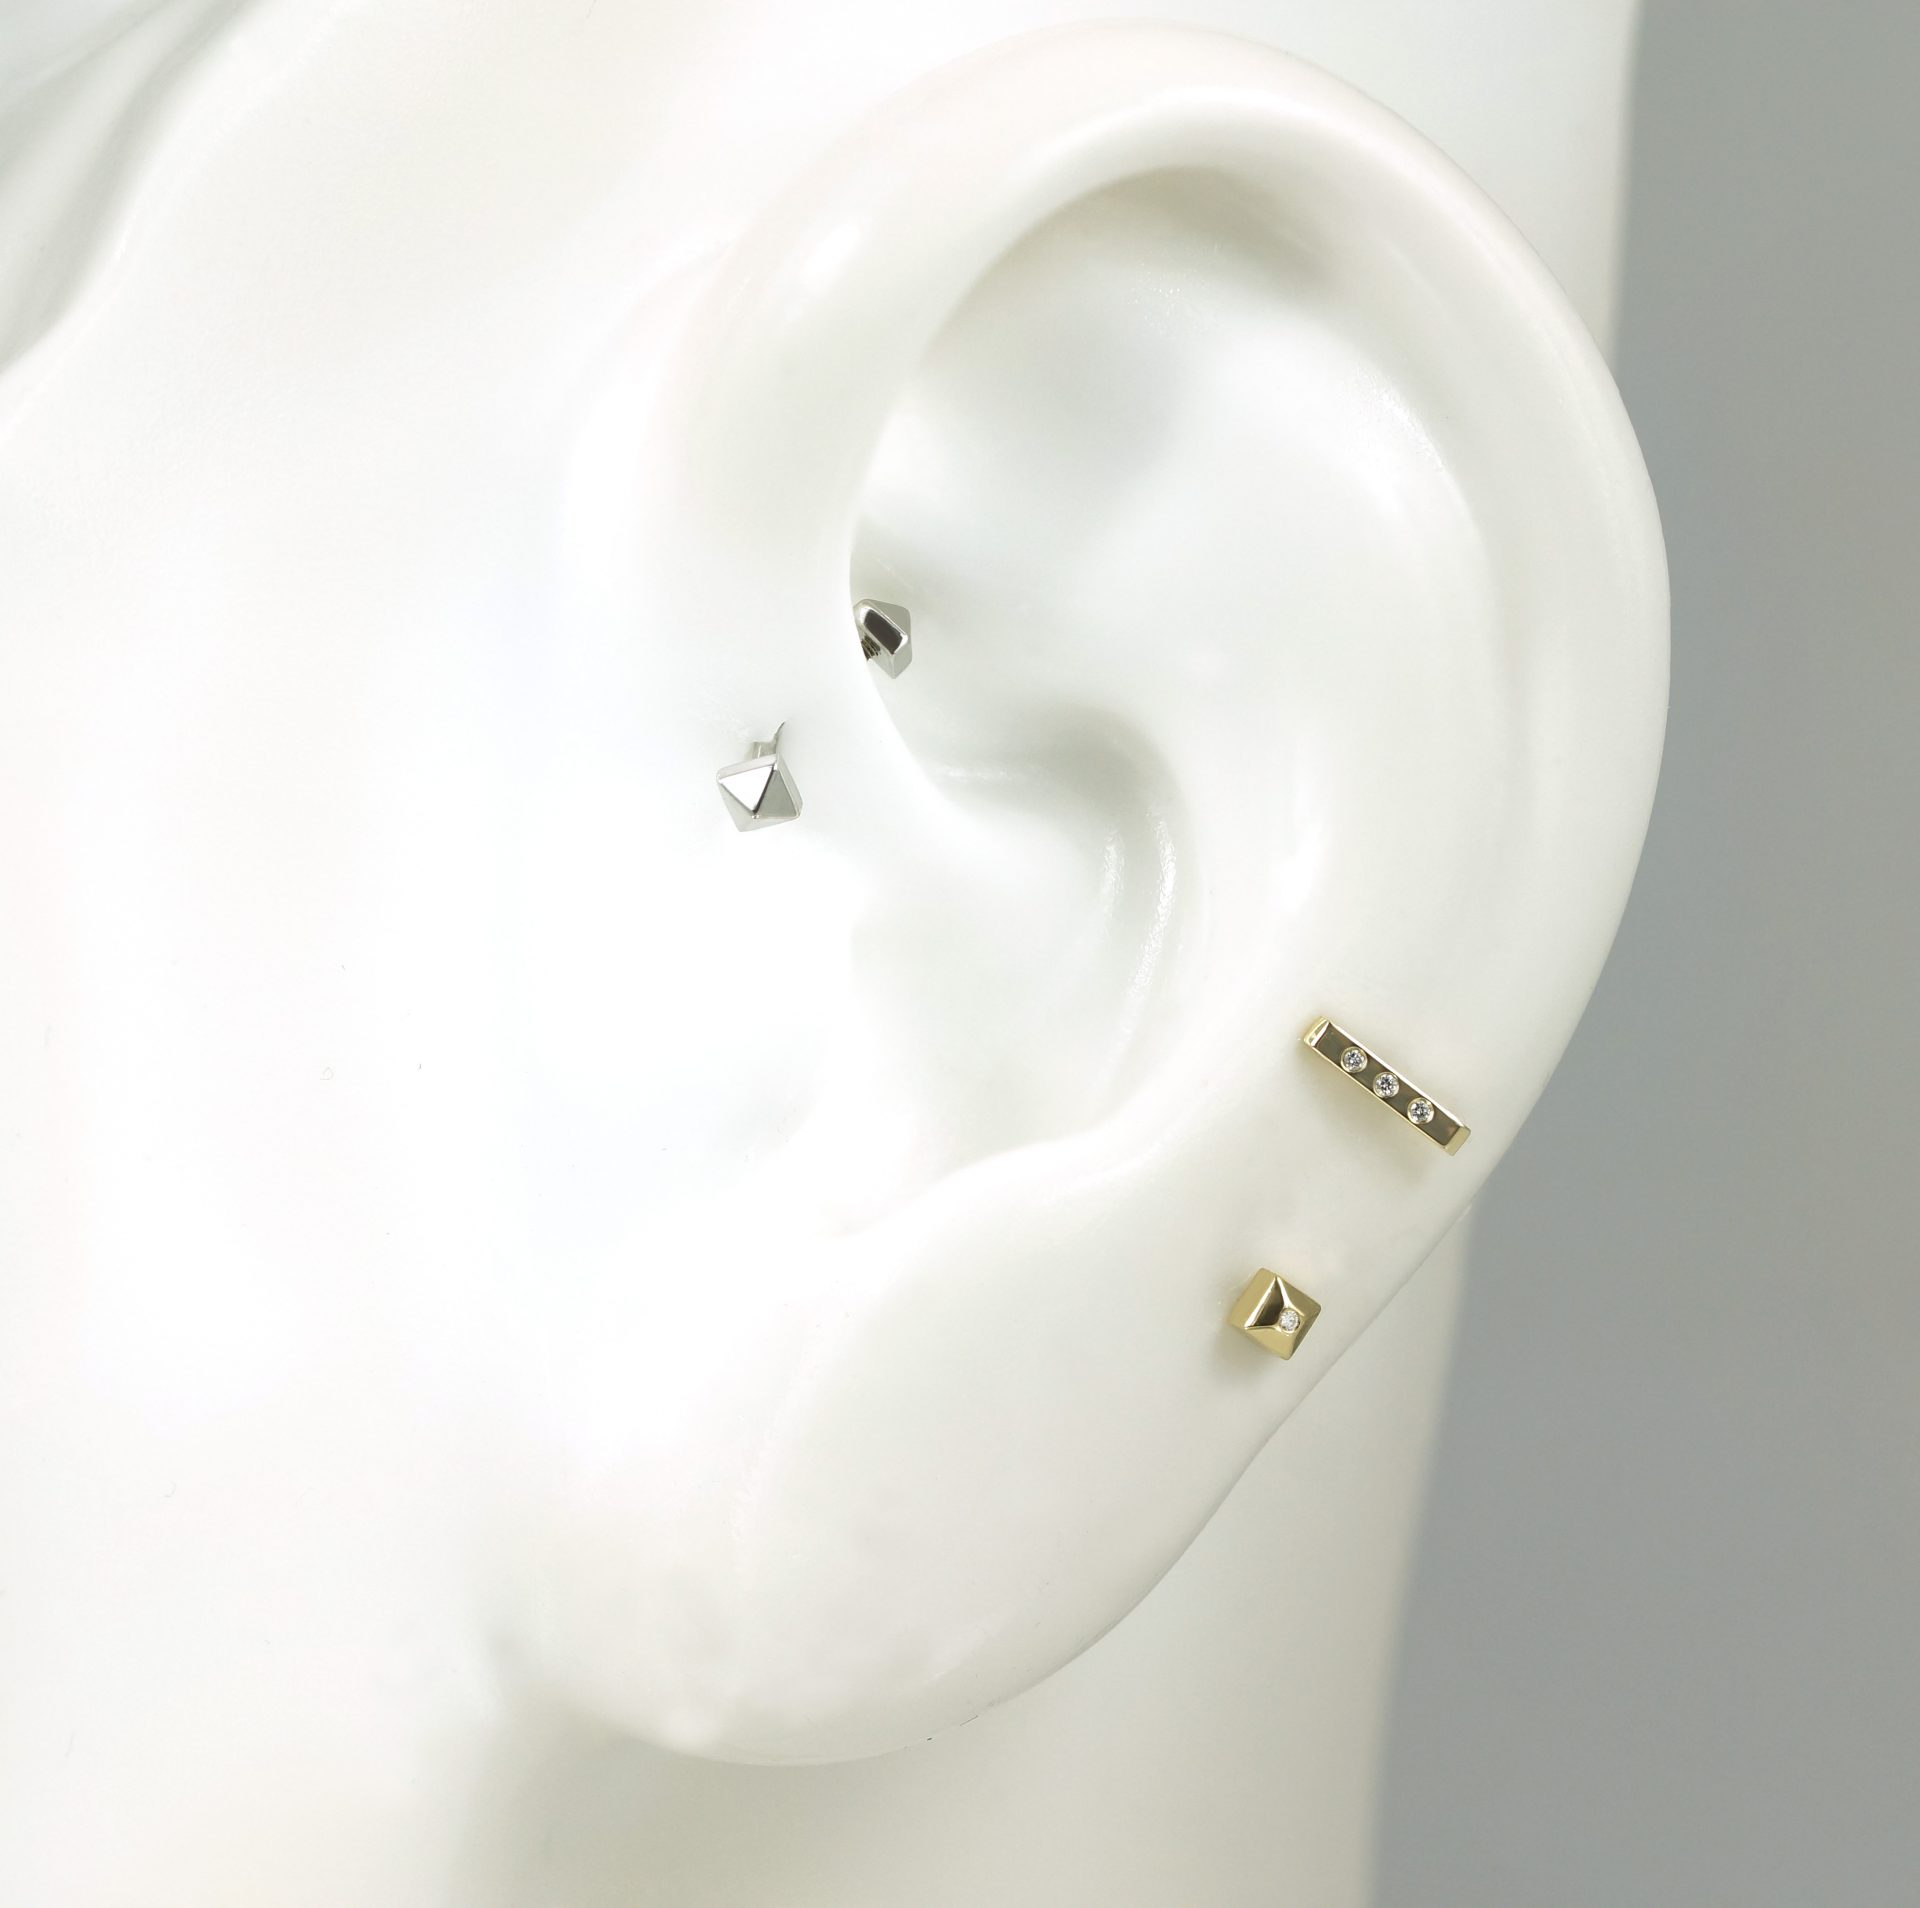 Luxury Cartilage Earrings Multi-buy Option. You can get this set of luxury piercing earrings for a better price. Save £ on these 18k gold diamond cartilage studs!